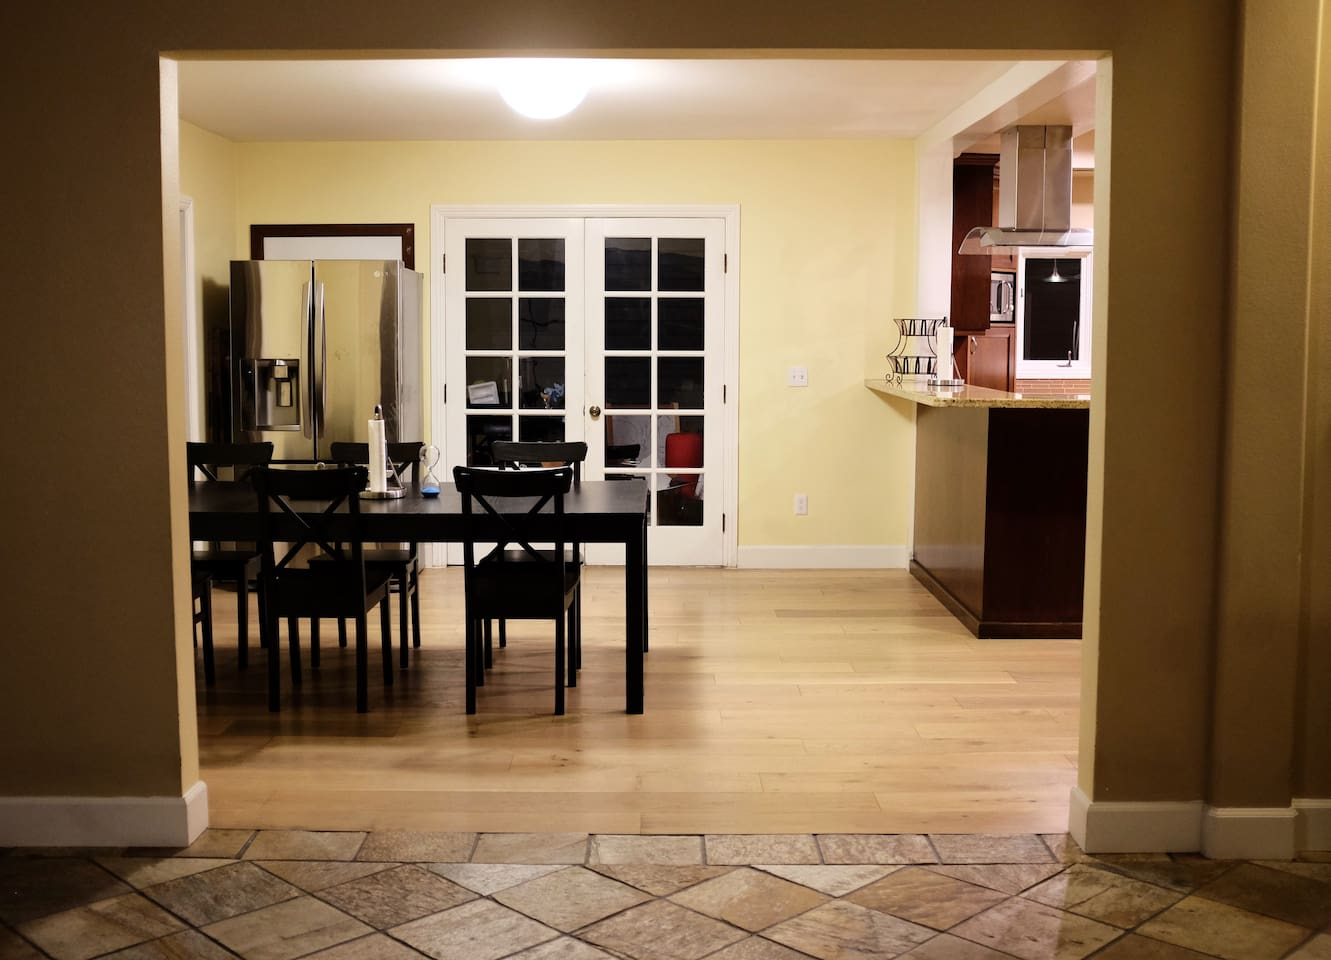 all inclusive personal mini resort ft houses for rent in fullerton california united states: heater table aaad